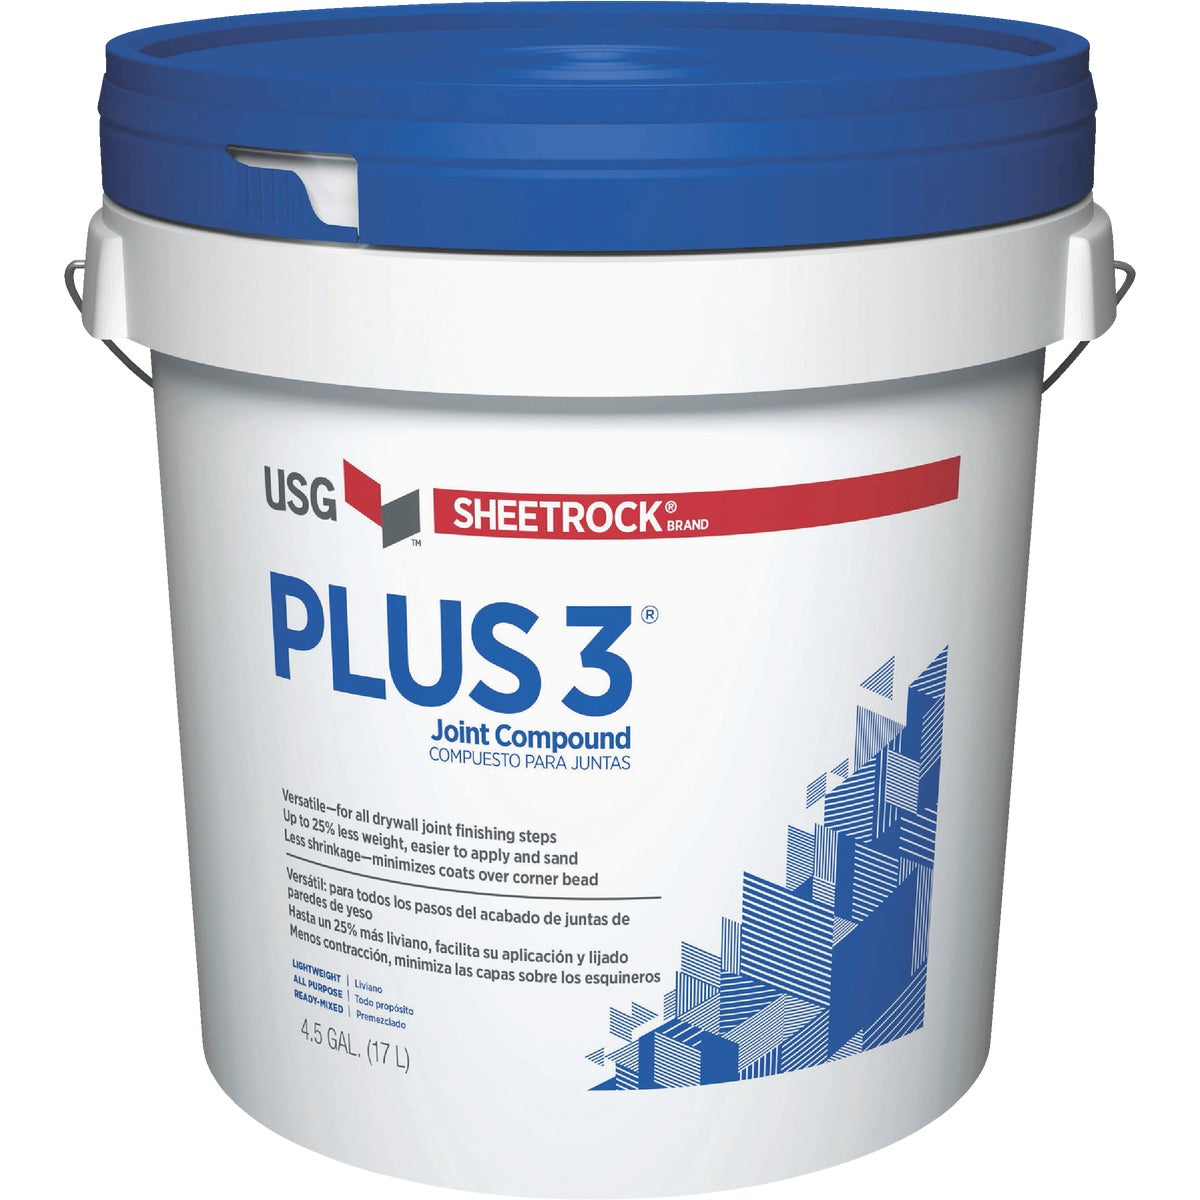 4.5GL PAIL PLS3 COMPOUND - 381466-048 by U S Gypsum